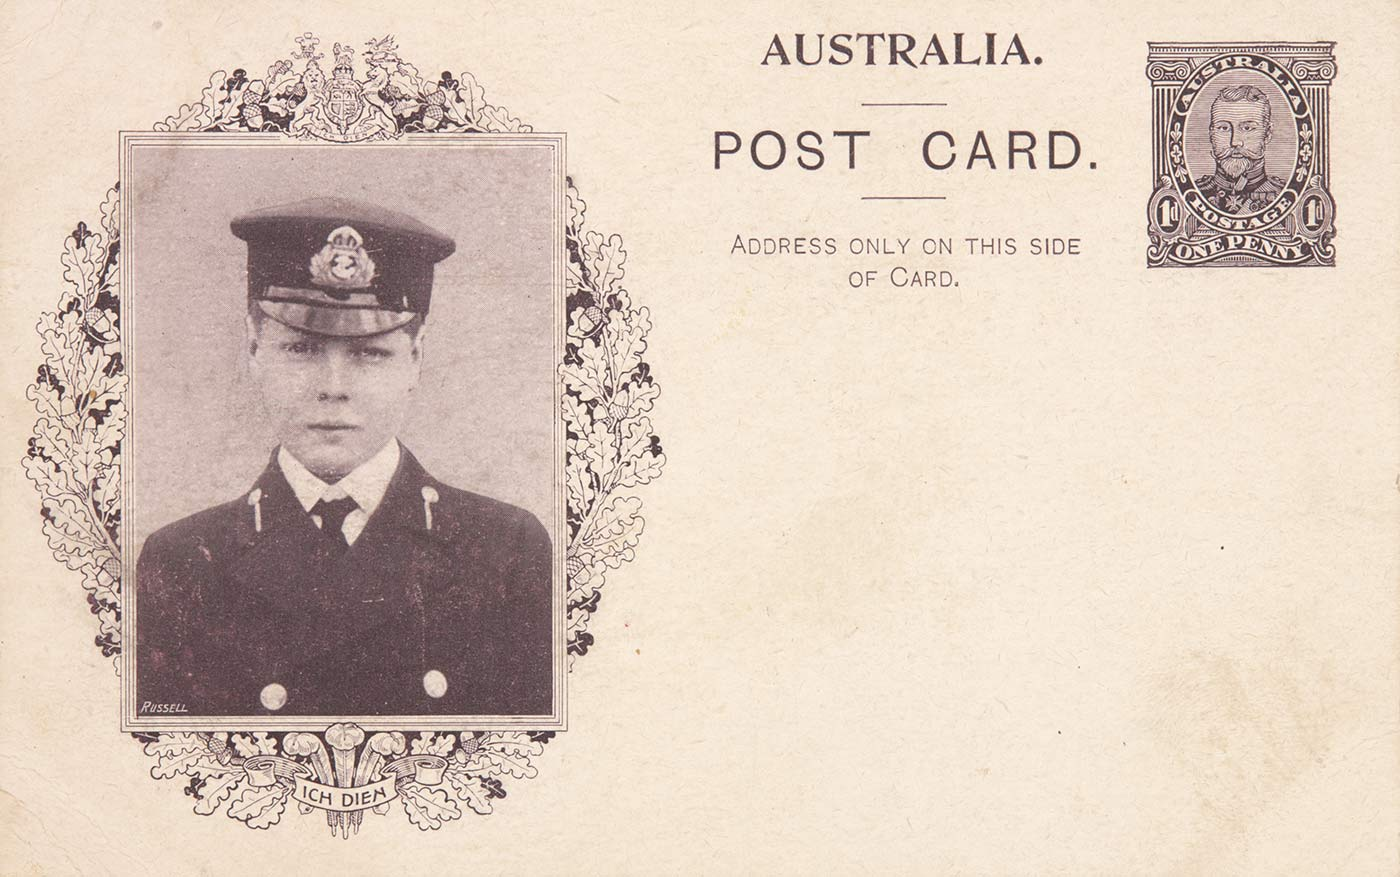 A postcard featuring a black and white portrait of a young man's face. He is wearing a cap with a crest on it and a dark military jacket with a white shirt and a dark tie. The image is located on the left side of the postcard and is surrounded by an oval wreath of oak leaves. The words